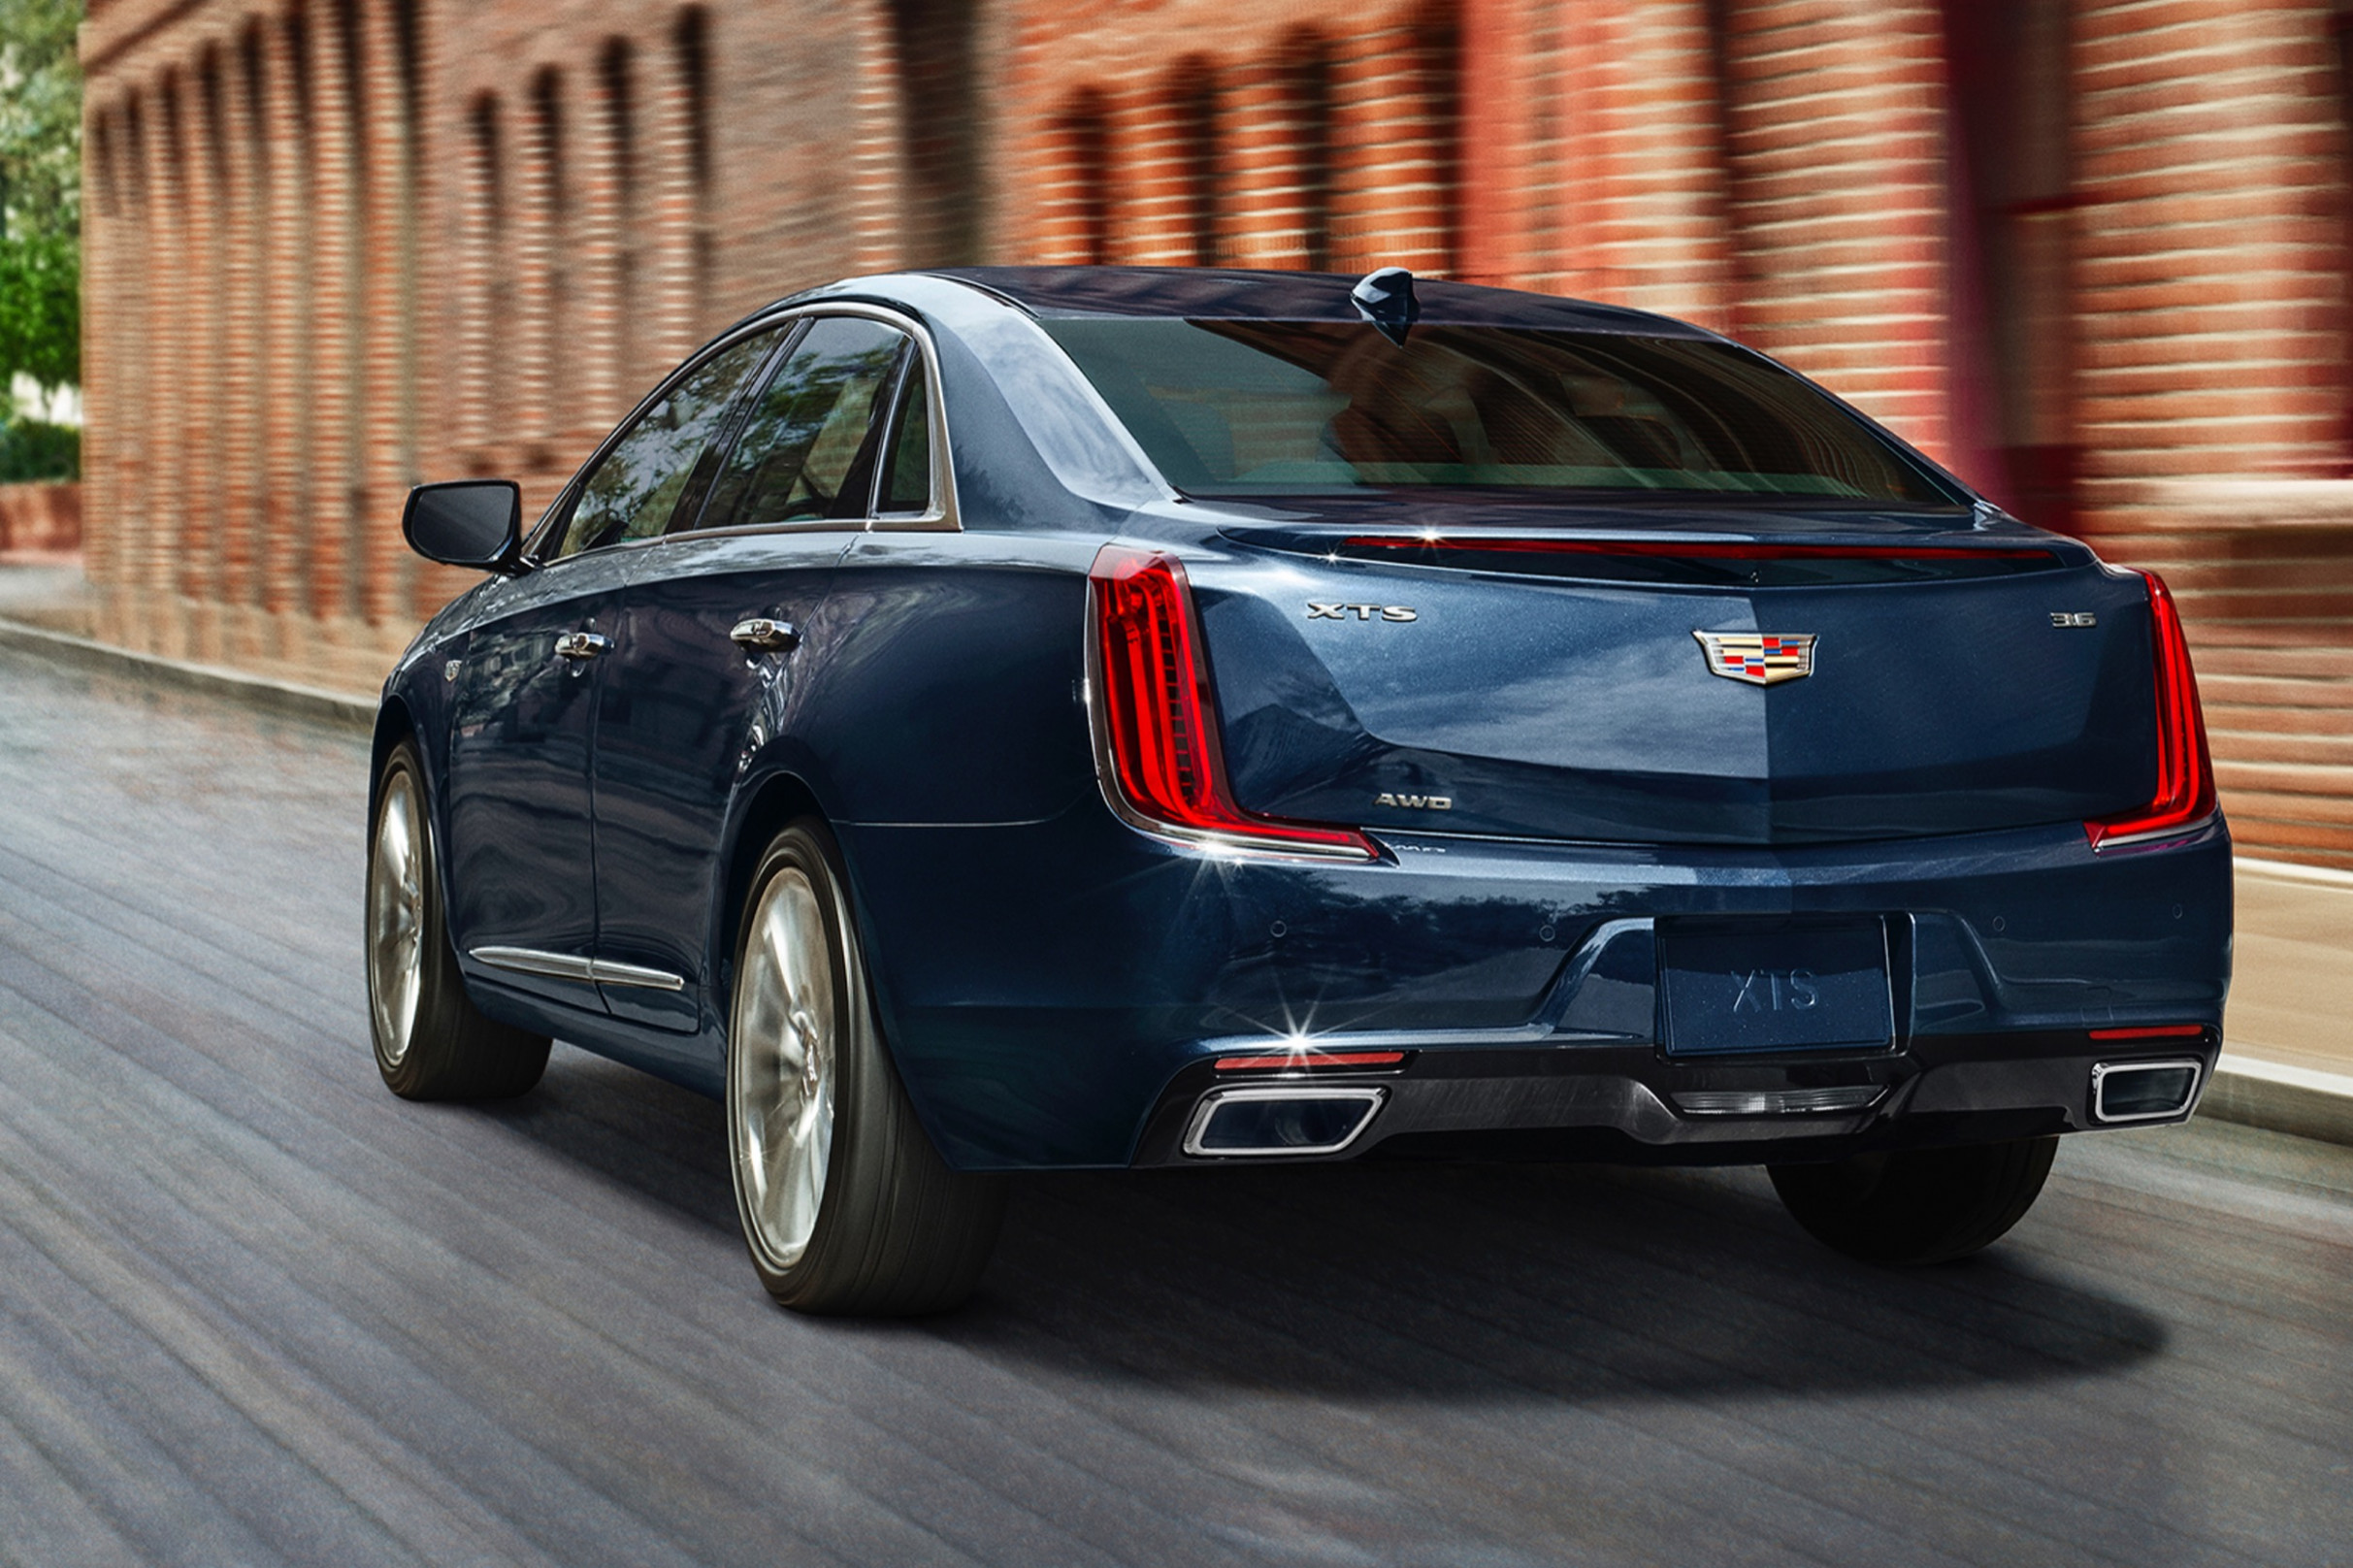 11 Cadillac XTS Info, Pictures, Specs, Wiki | GM Authority